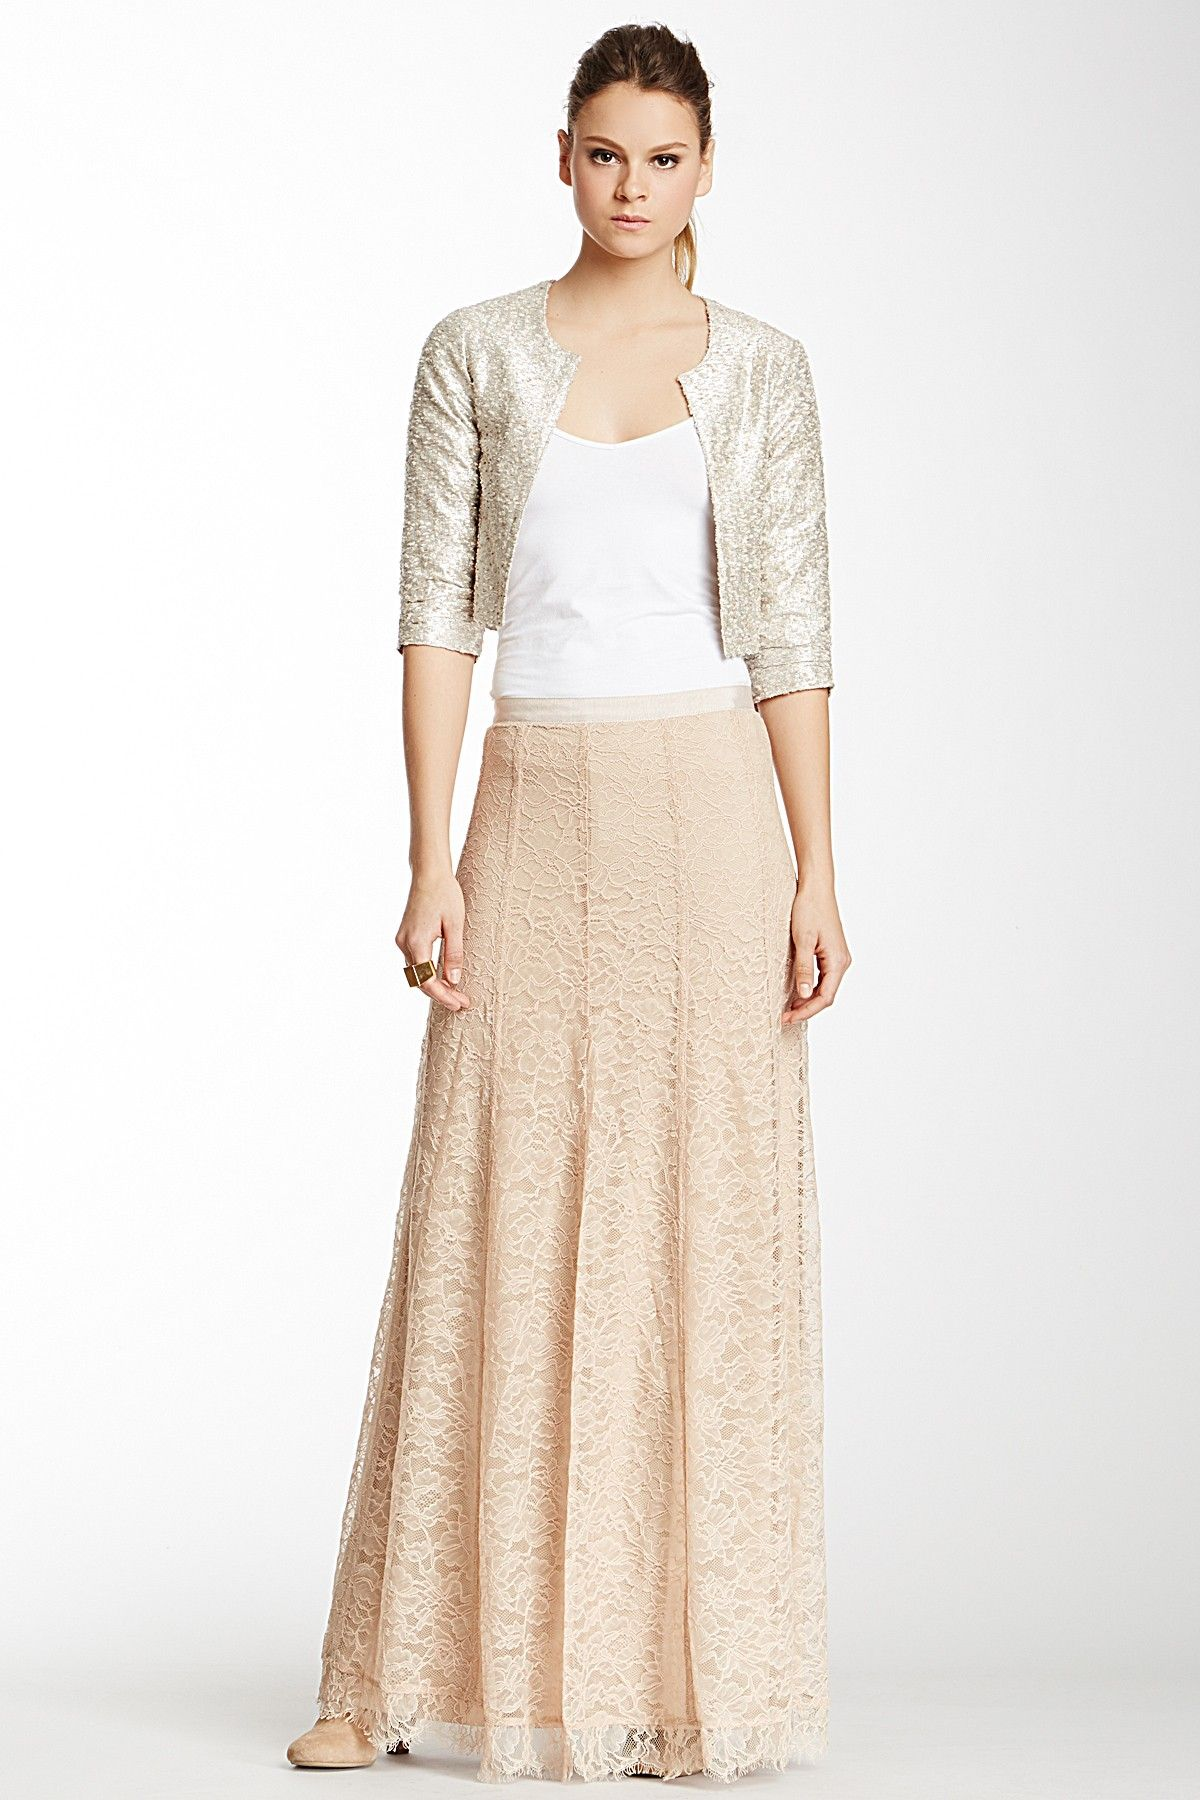 Lace maxi skirt you can make from regular laceujust cut at the